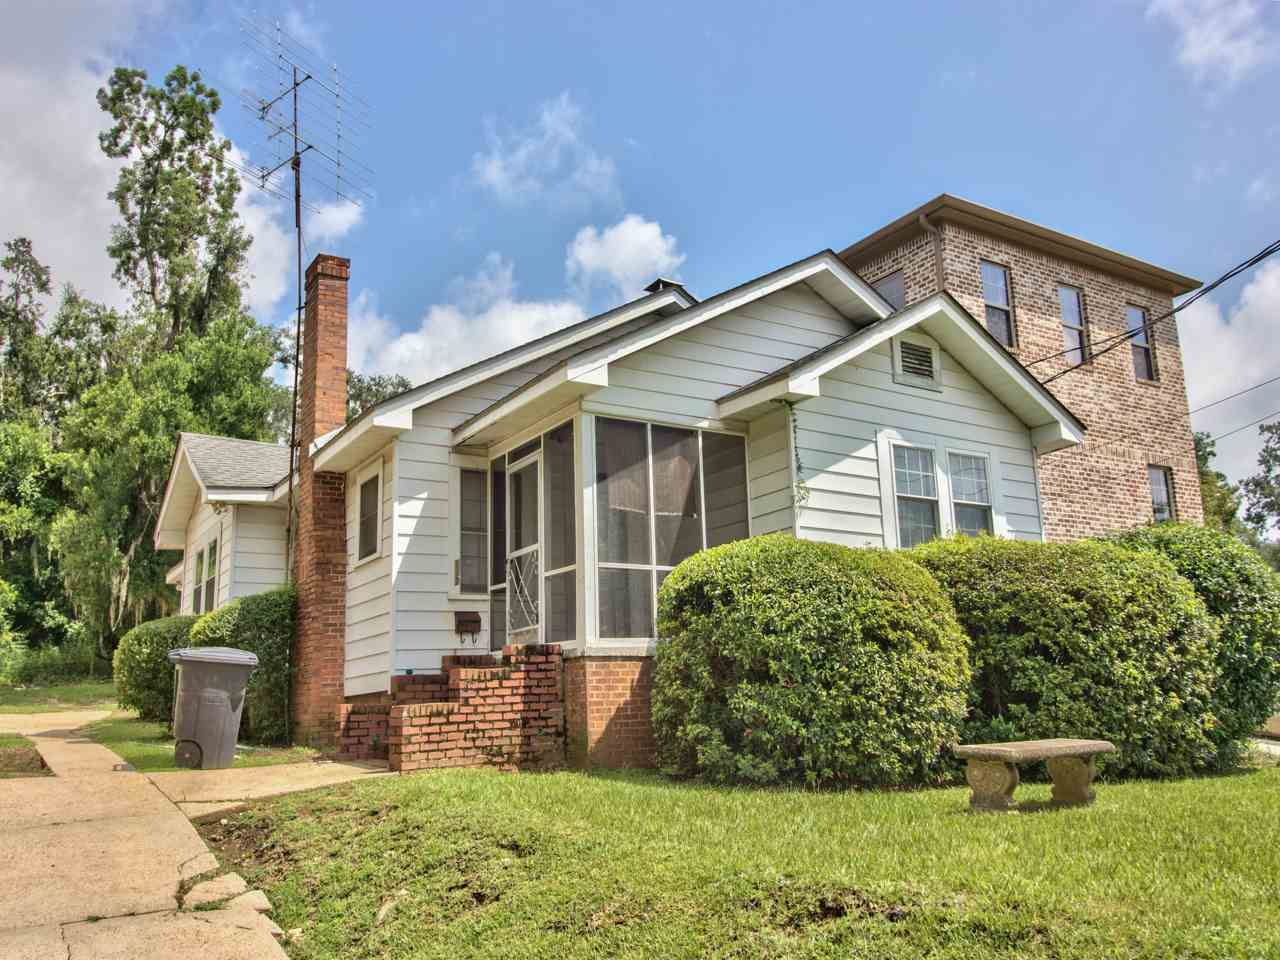 222 Young Street, Tallahassee, FL 32301 - MLS#: 324963